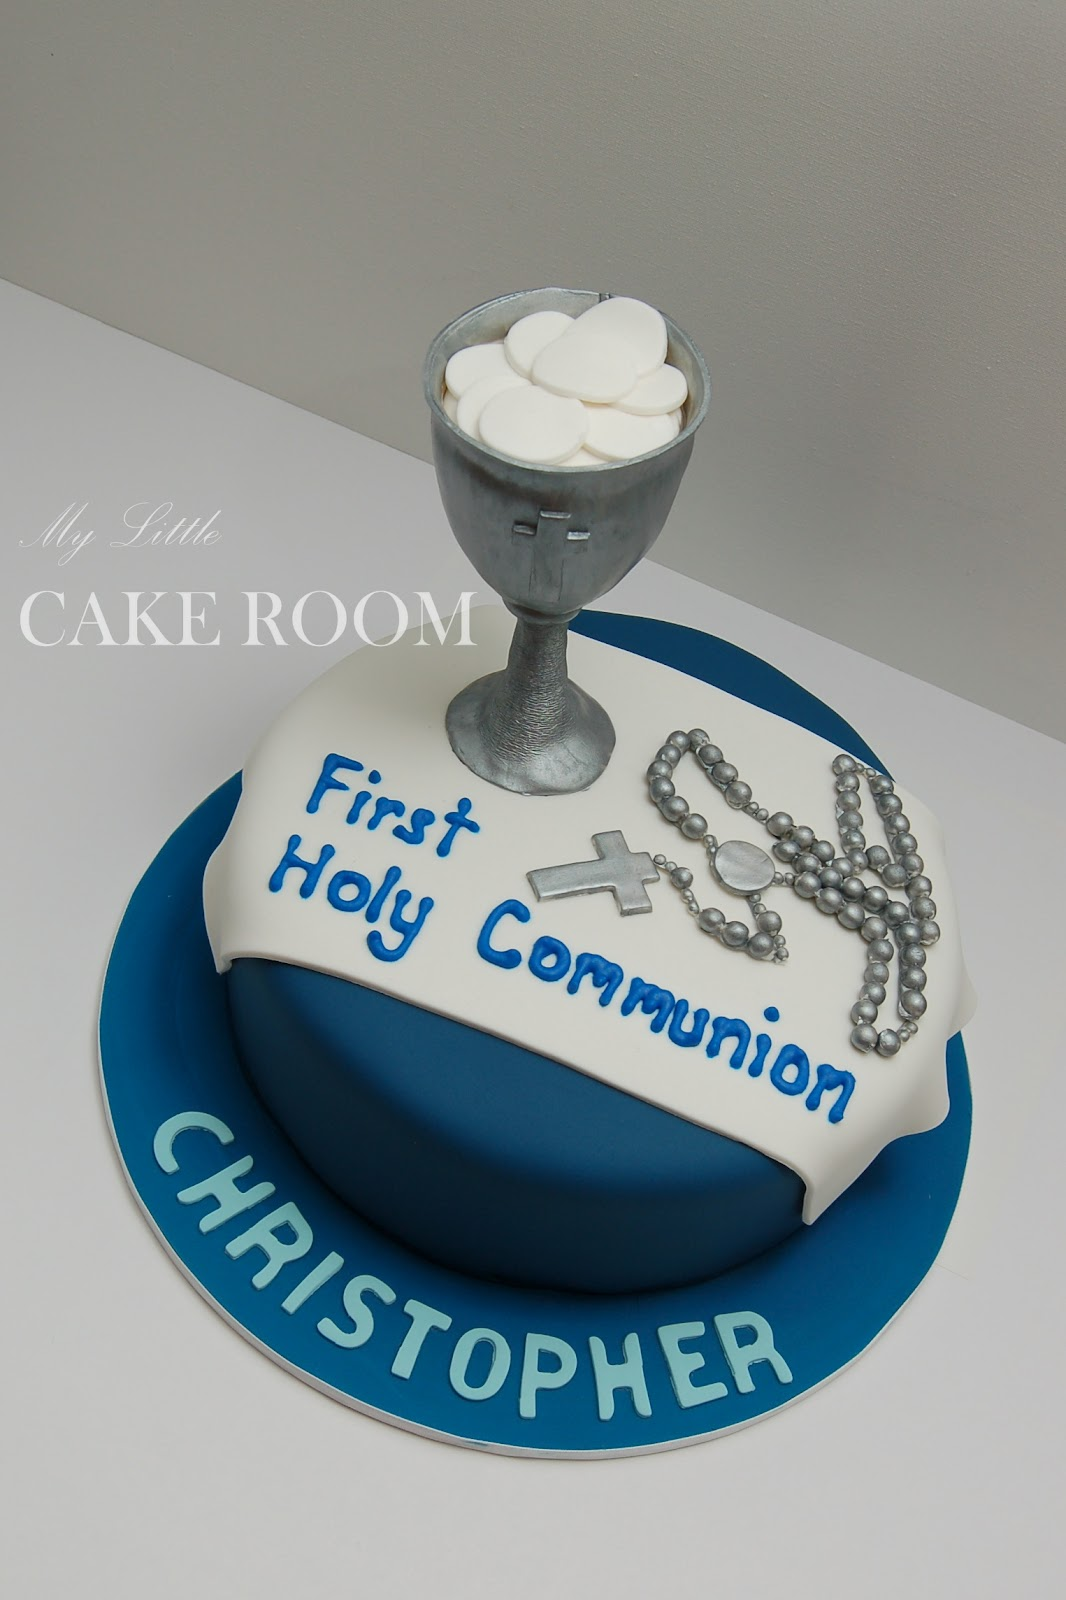 Holy communion chocolate cake ideas and designs - Holy communion cake decorations ...